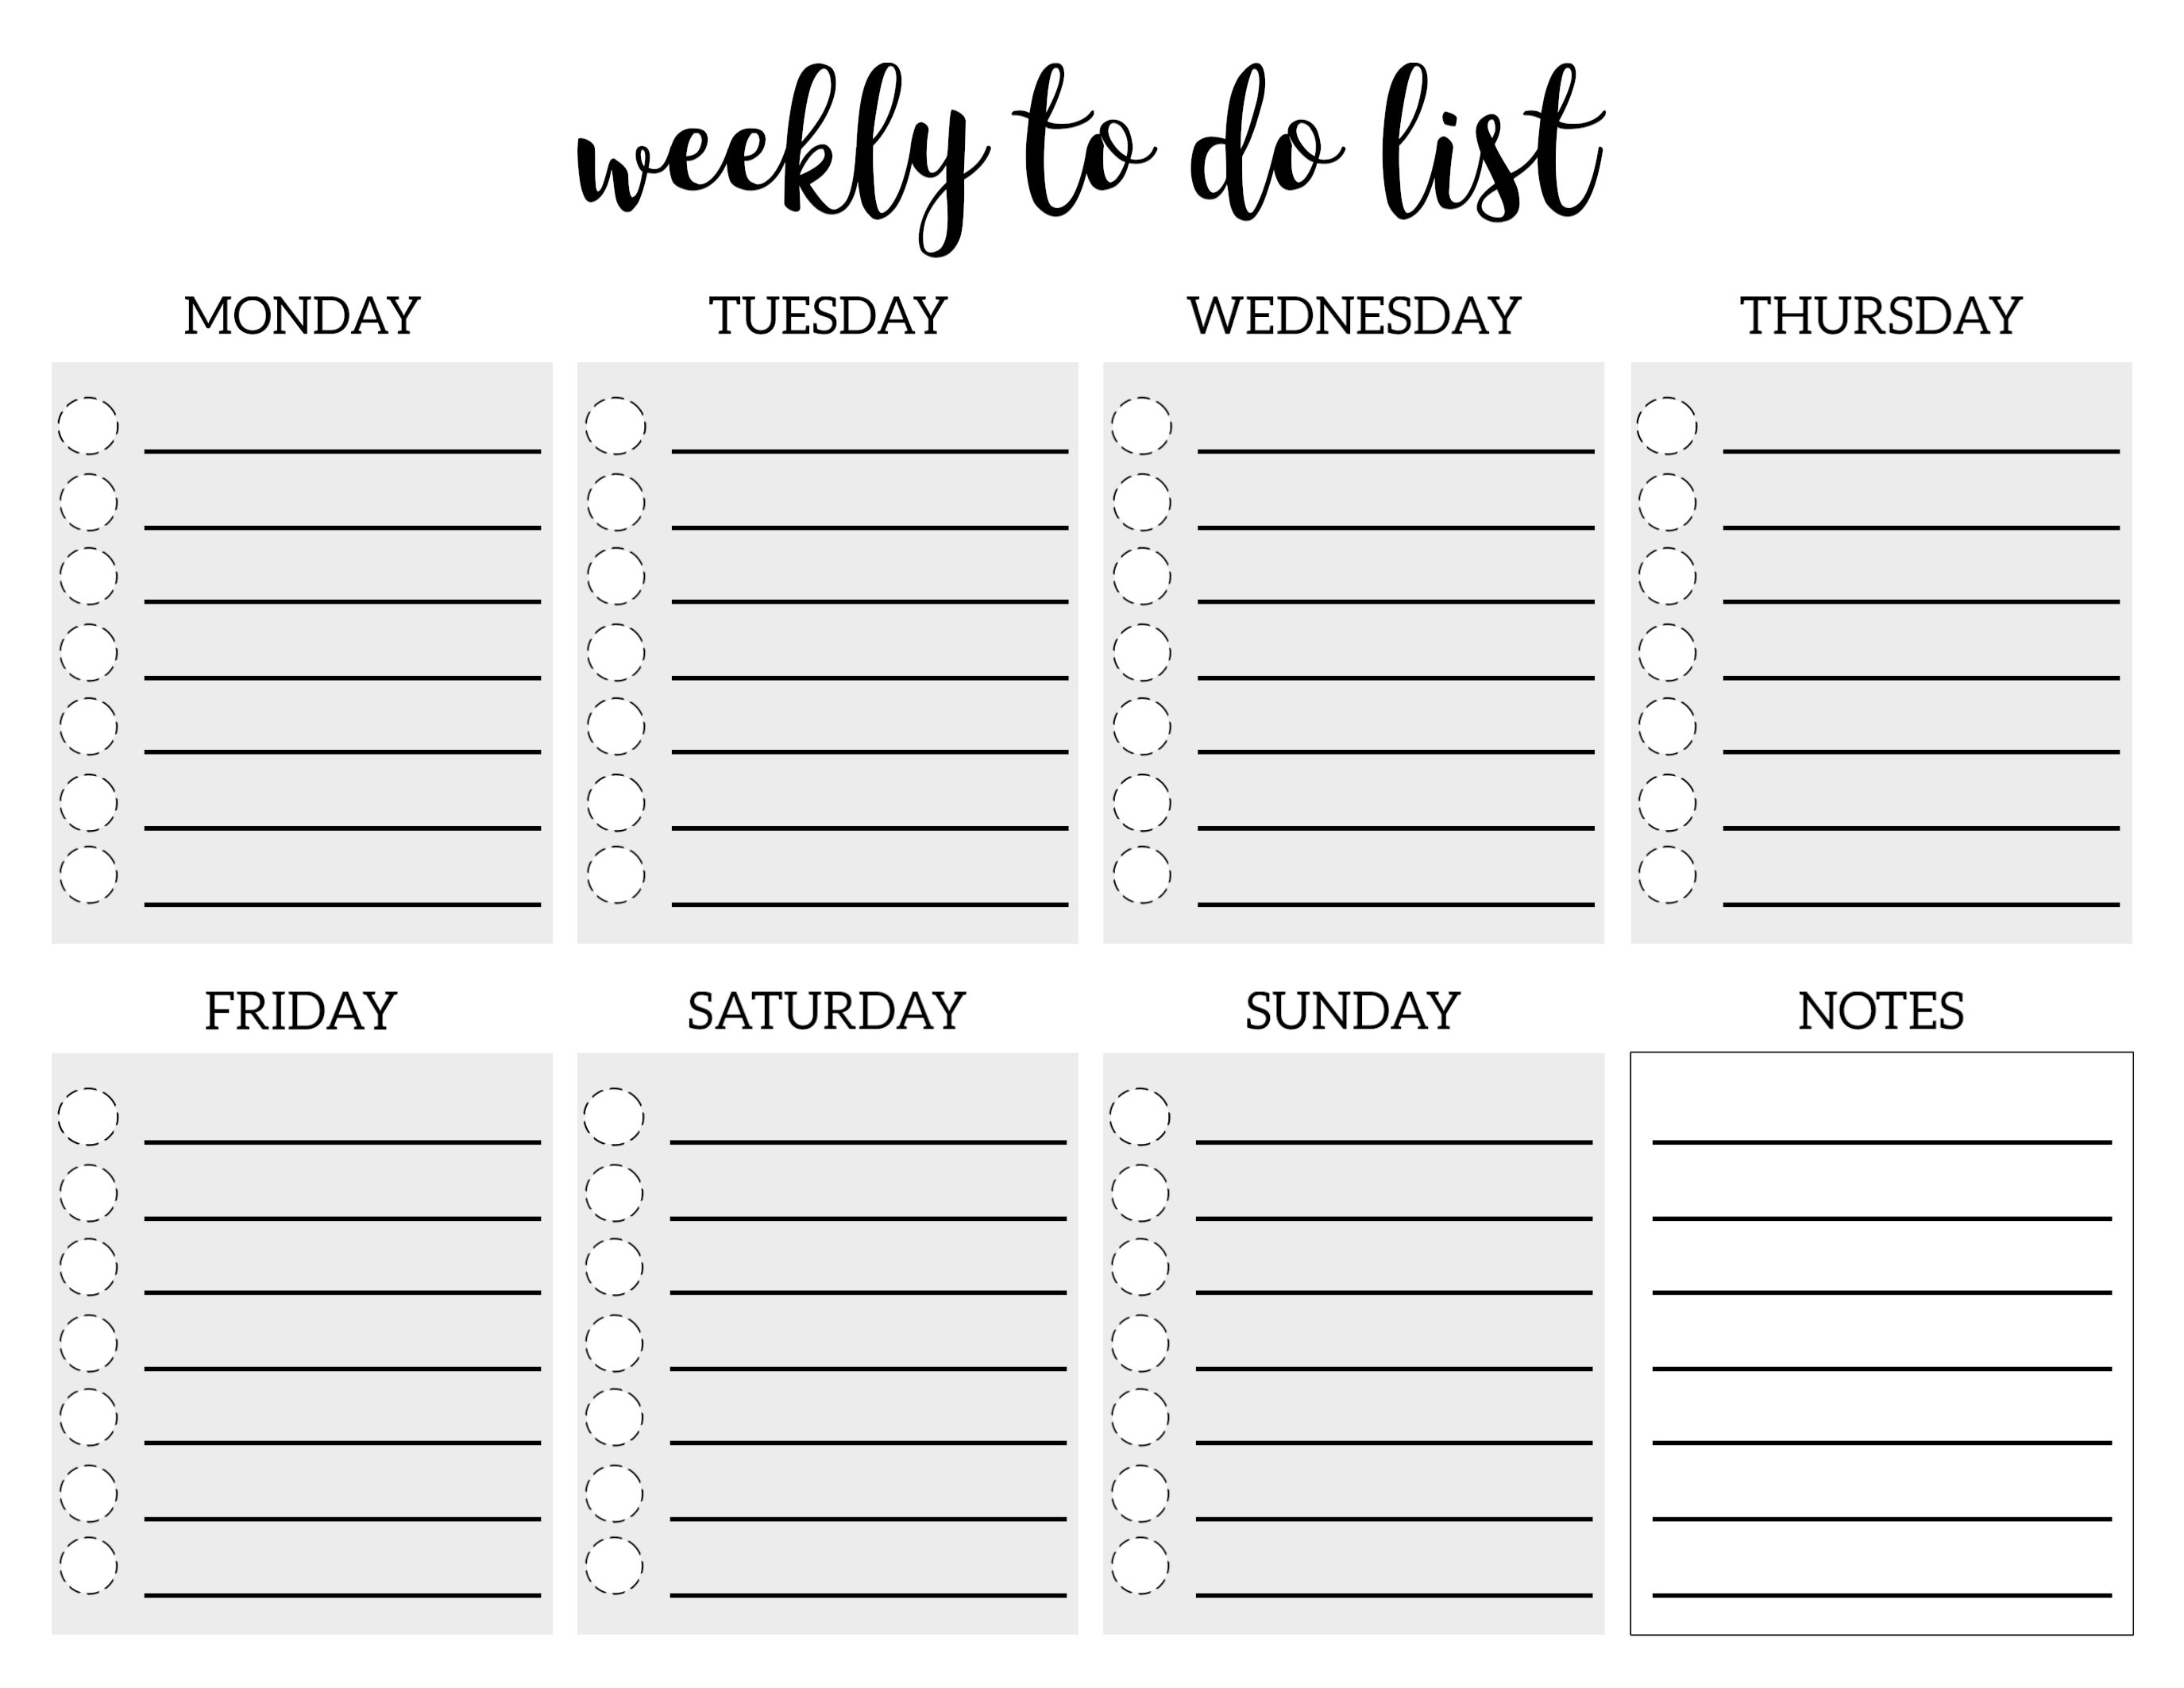 Weekly To Do List Printable Checklist Template - Paper Trail Design - Weekly To Do List Free Printable